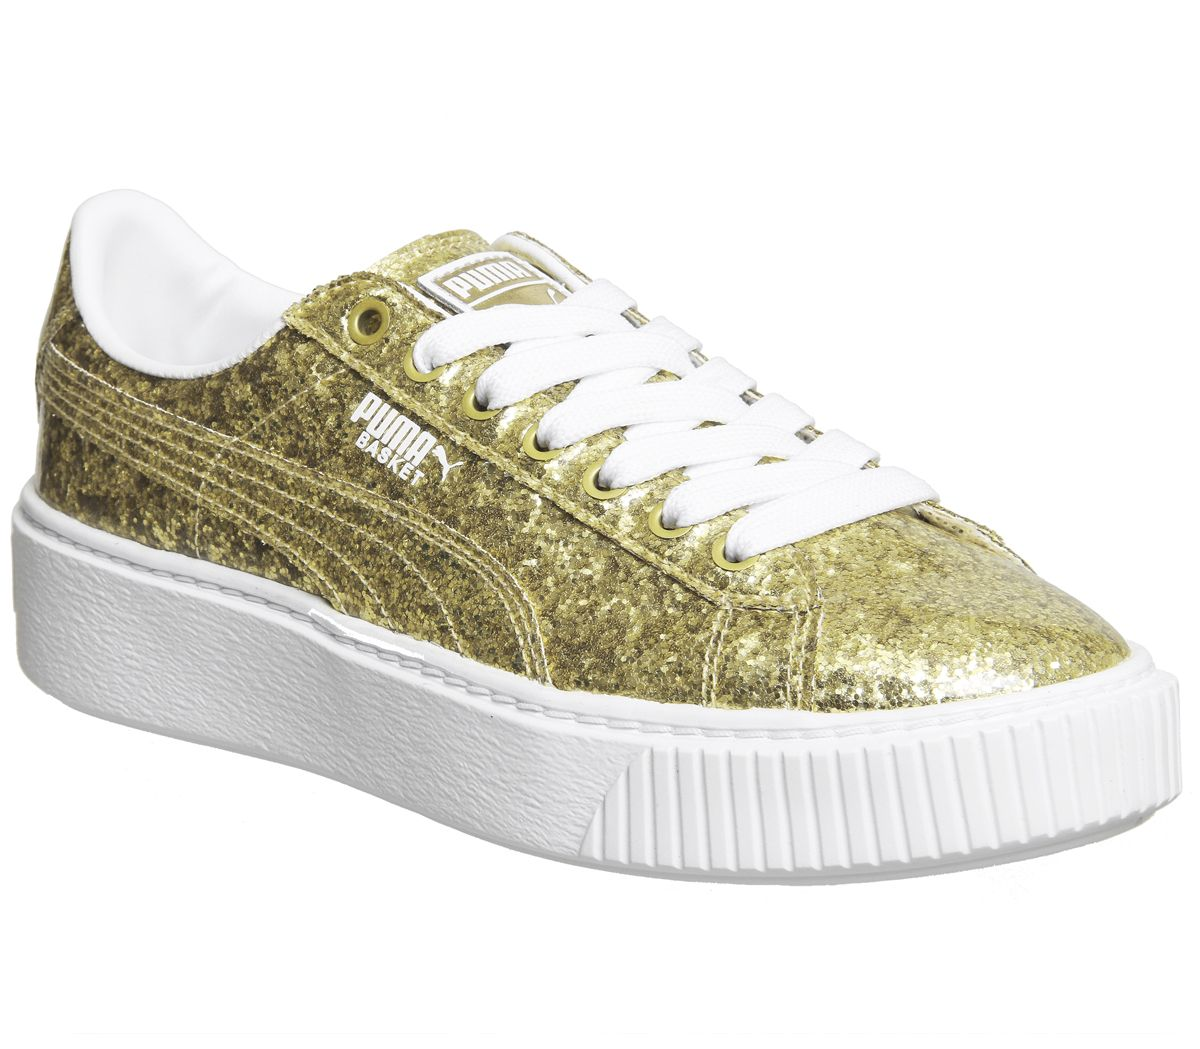 124cb38596699f Puma Basket Platform Trainers Gold Glitter White - Hers trainers